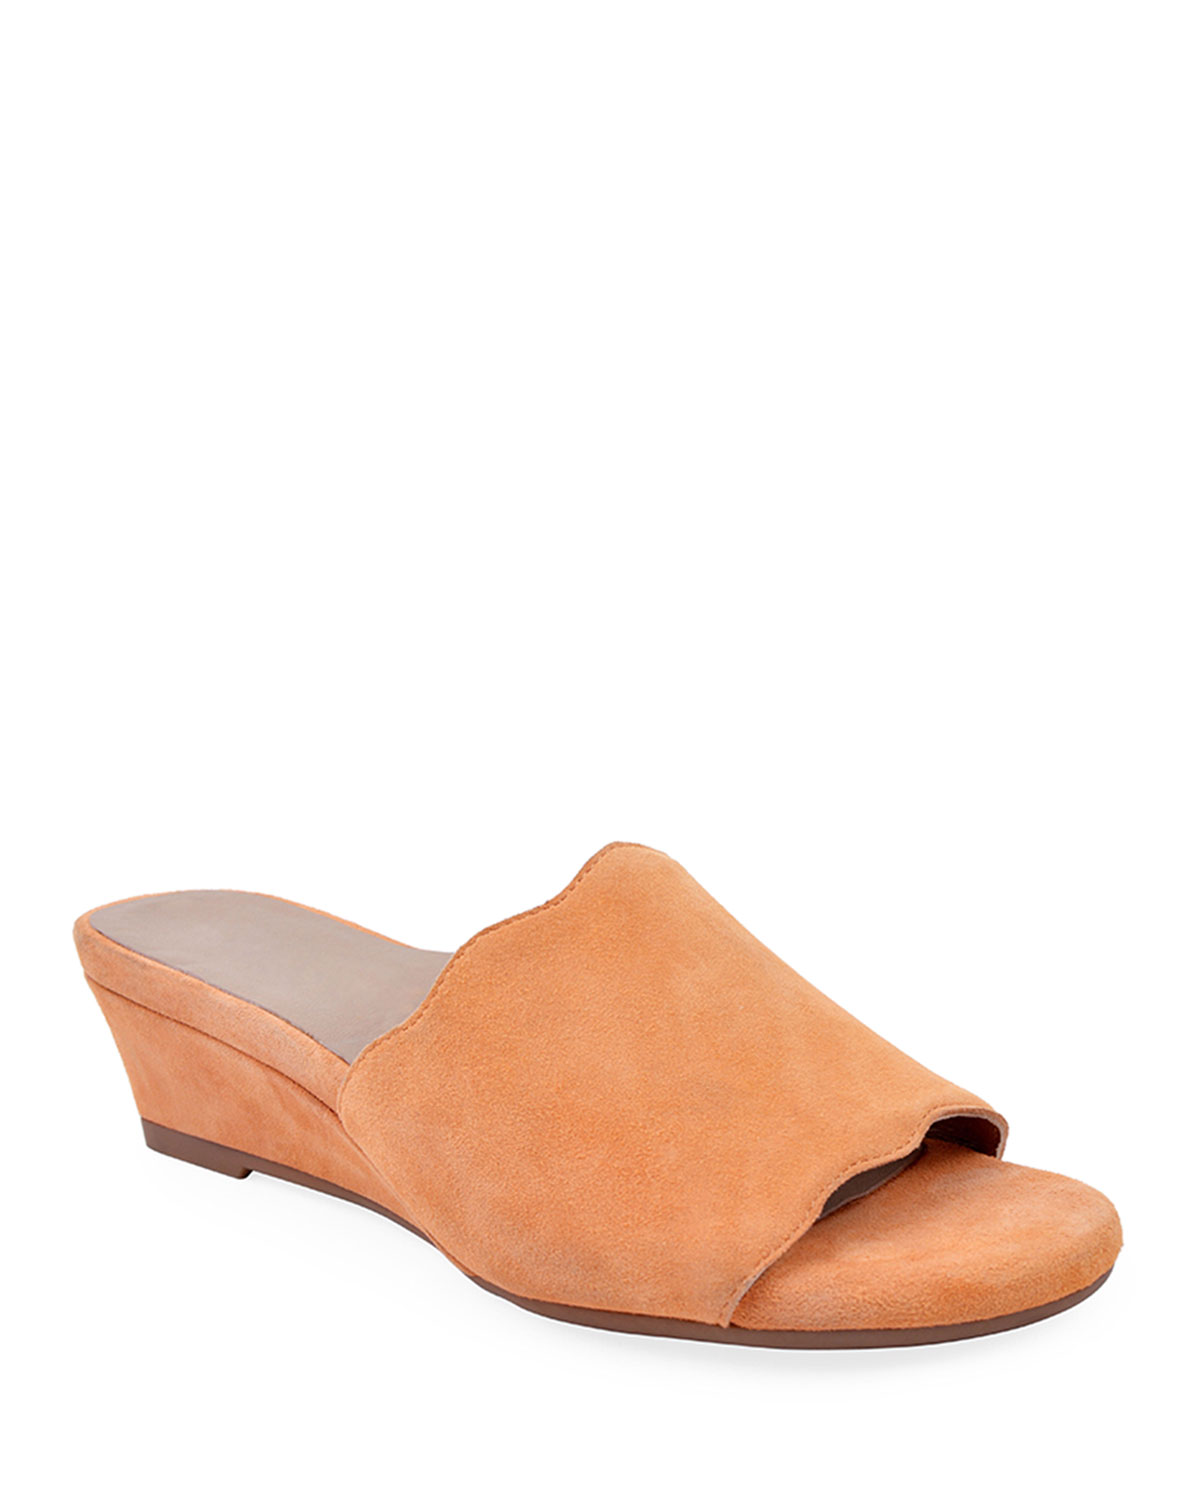 Seema Suede Demi-Wedge Slide Sandals, Chili